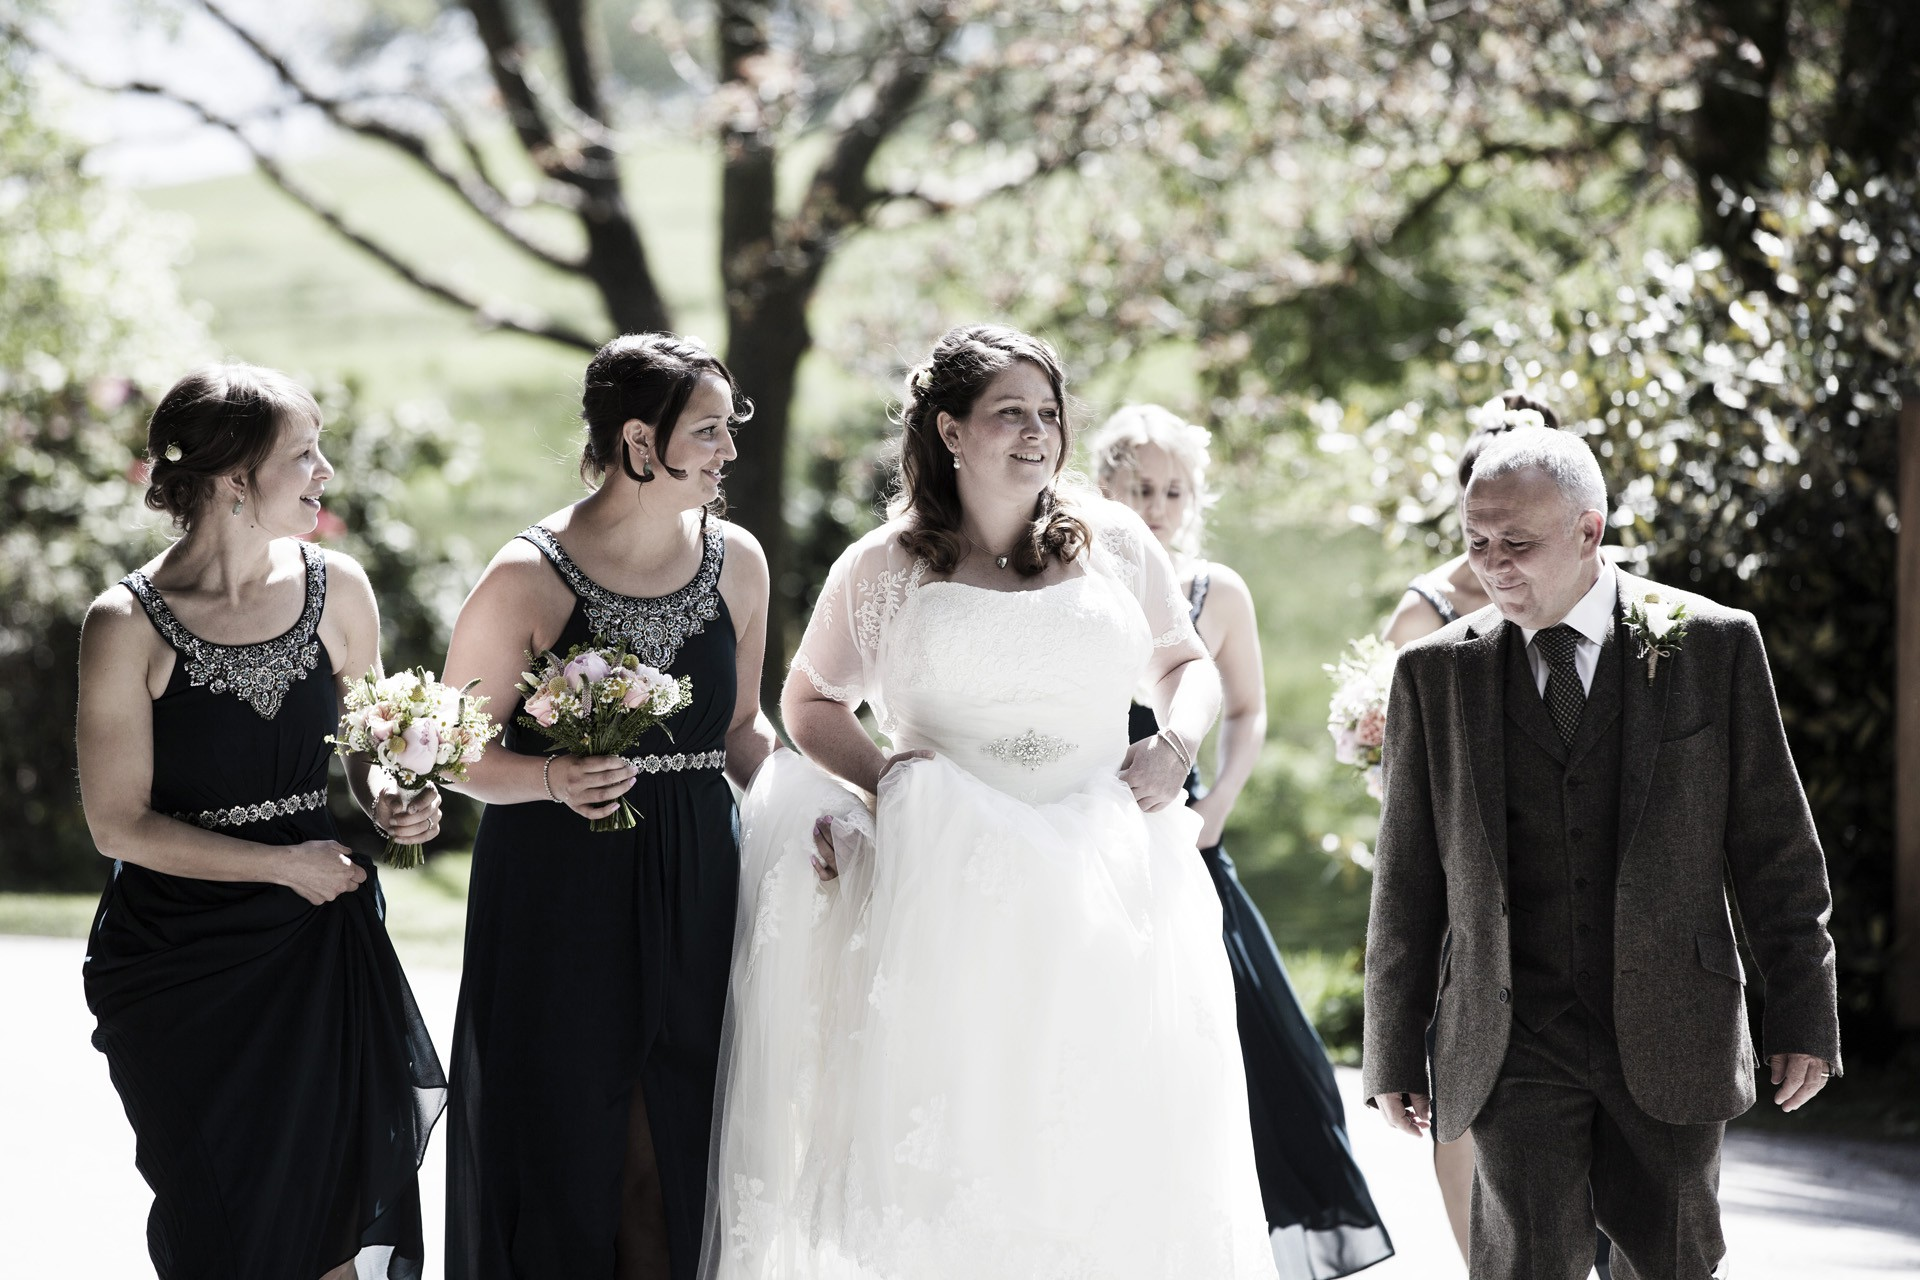 Keith and Sarah Wedding, May 2015